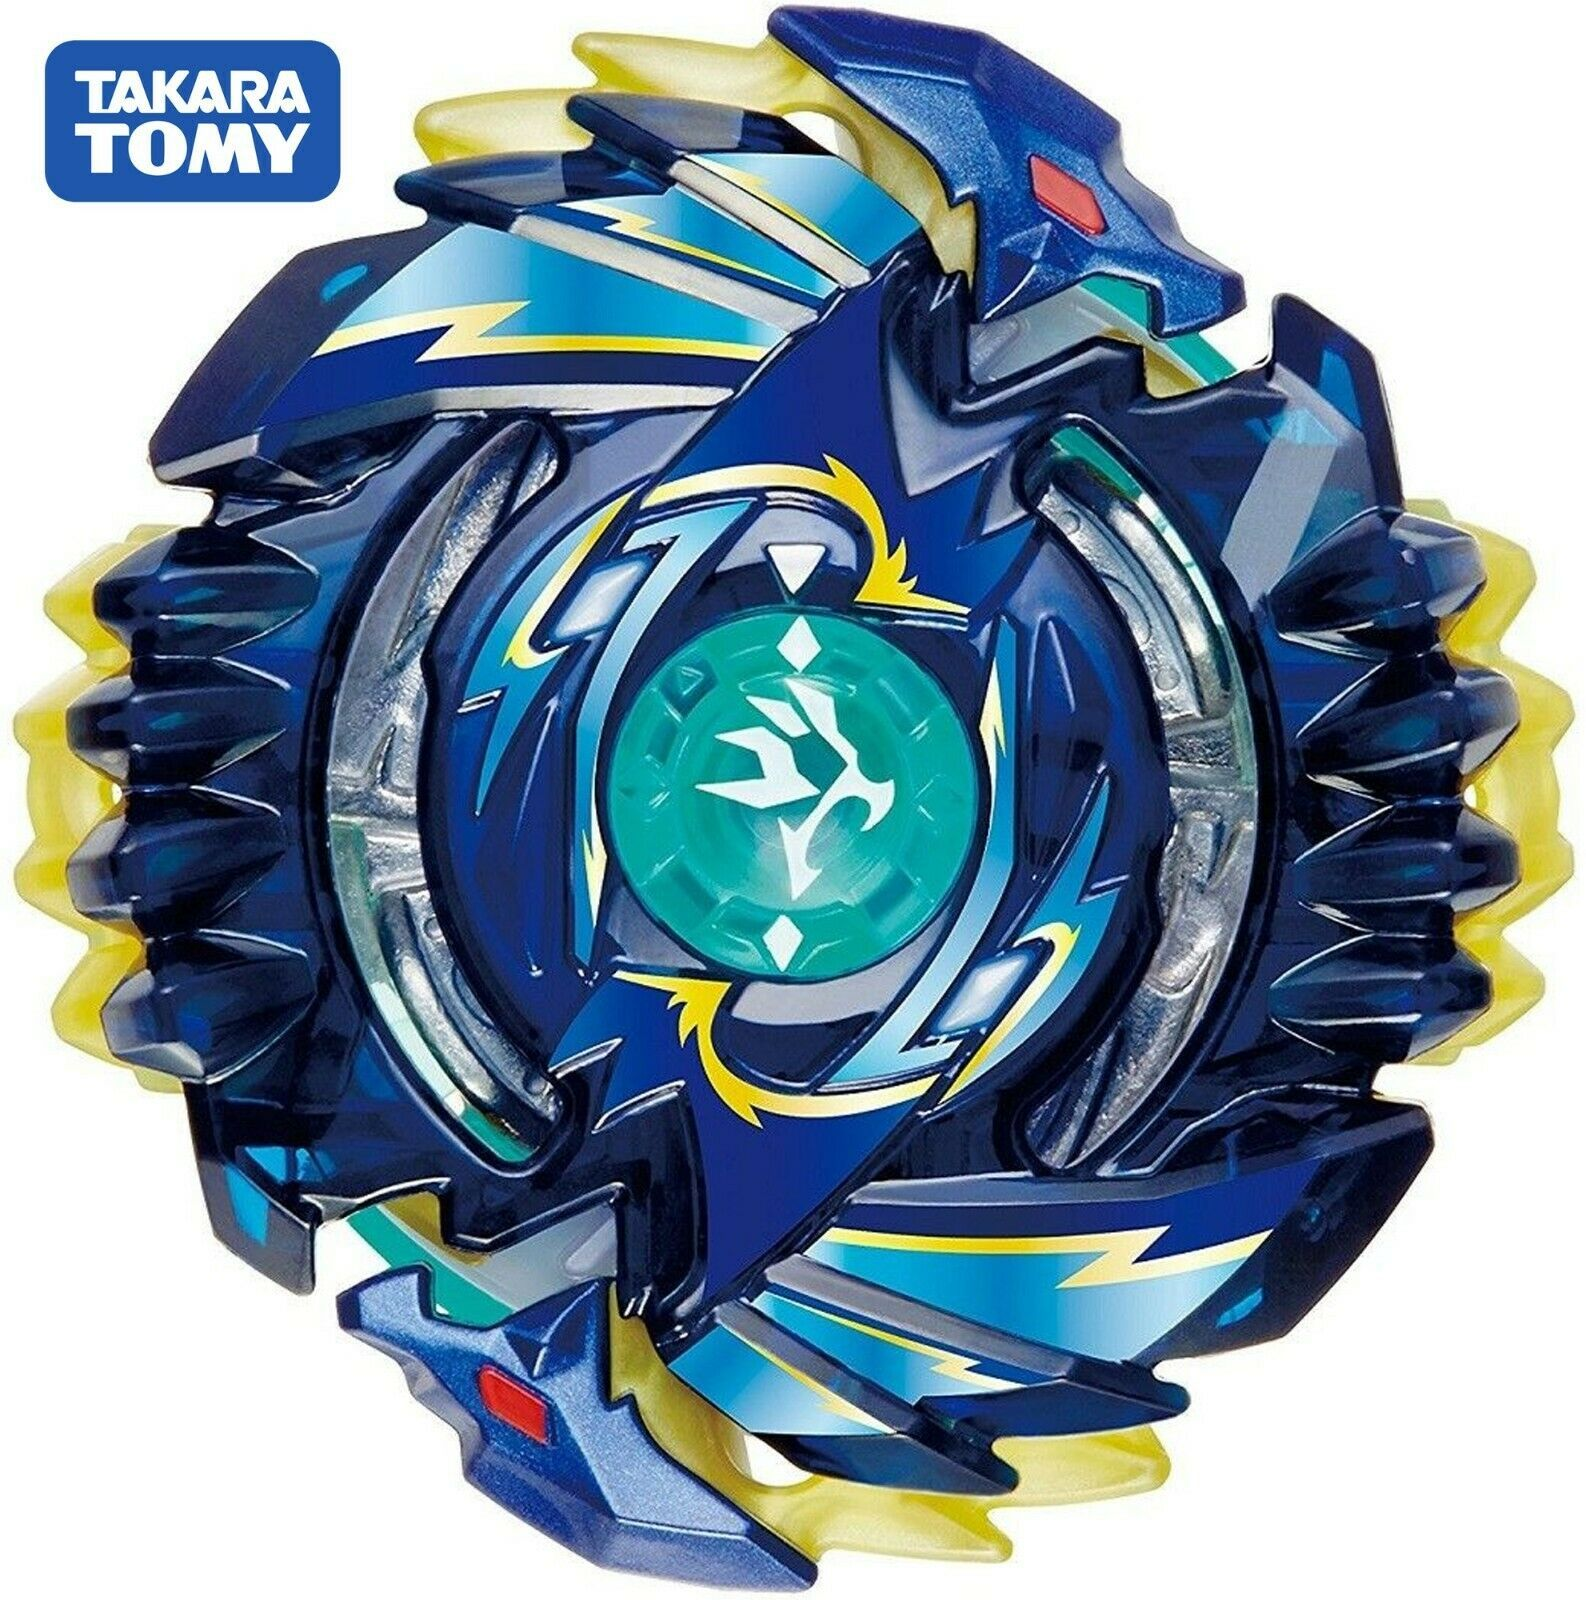 TAKARA TOMY B-95 01 RARE Shelter Regulus 5Star Tower R3 Burst Booster Beyblade - $44.99